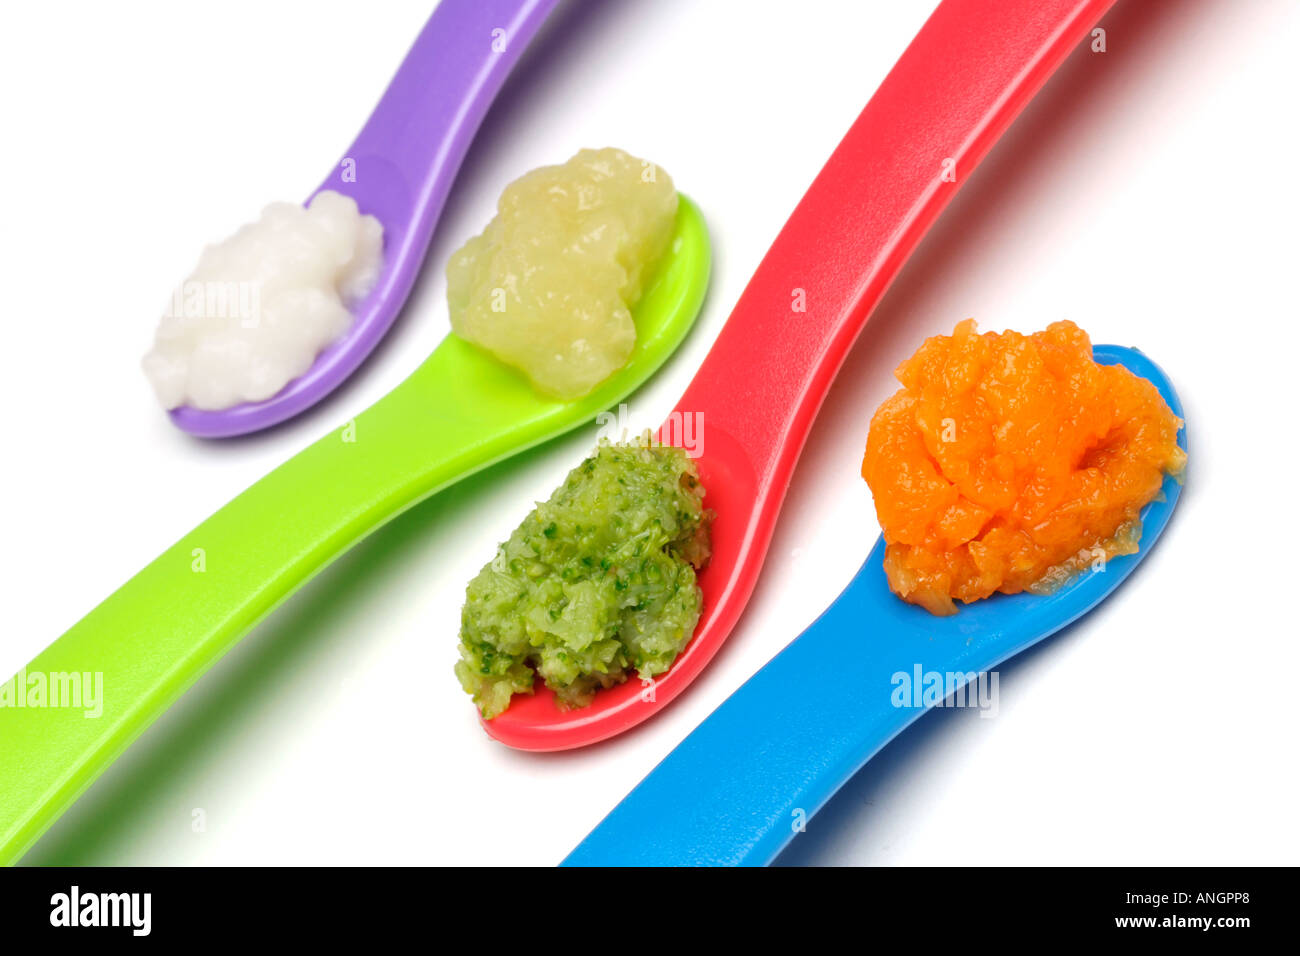 Early weaning foods for babies baby rice pureed apple broccoli carrot on plastic weaning spoons - Stock Image